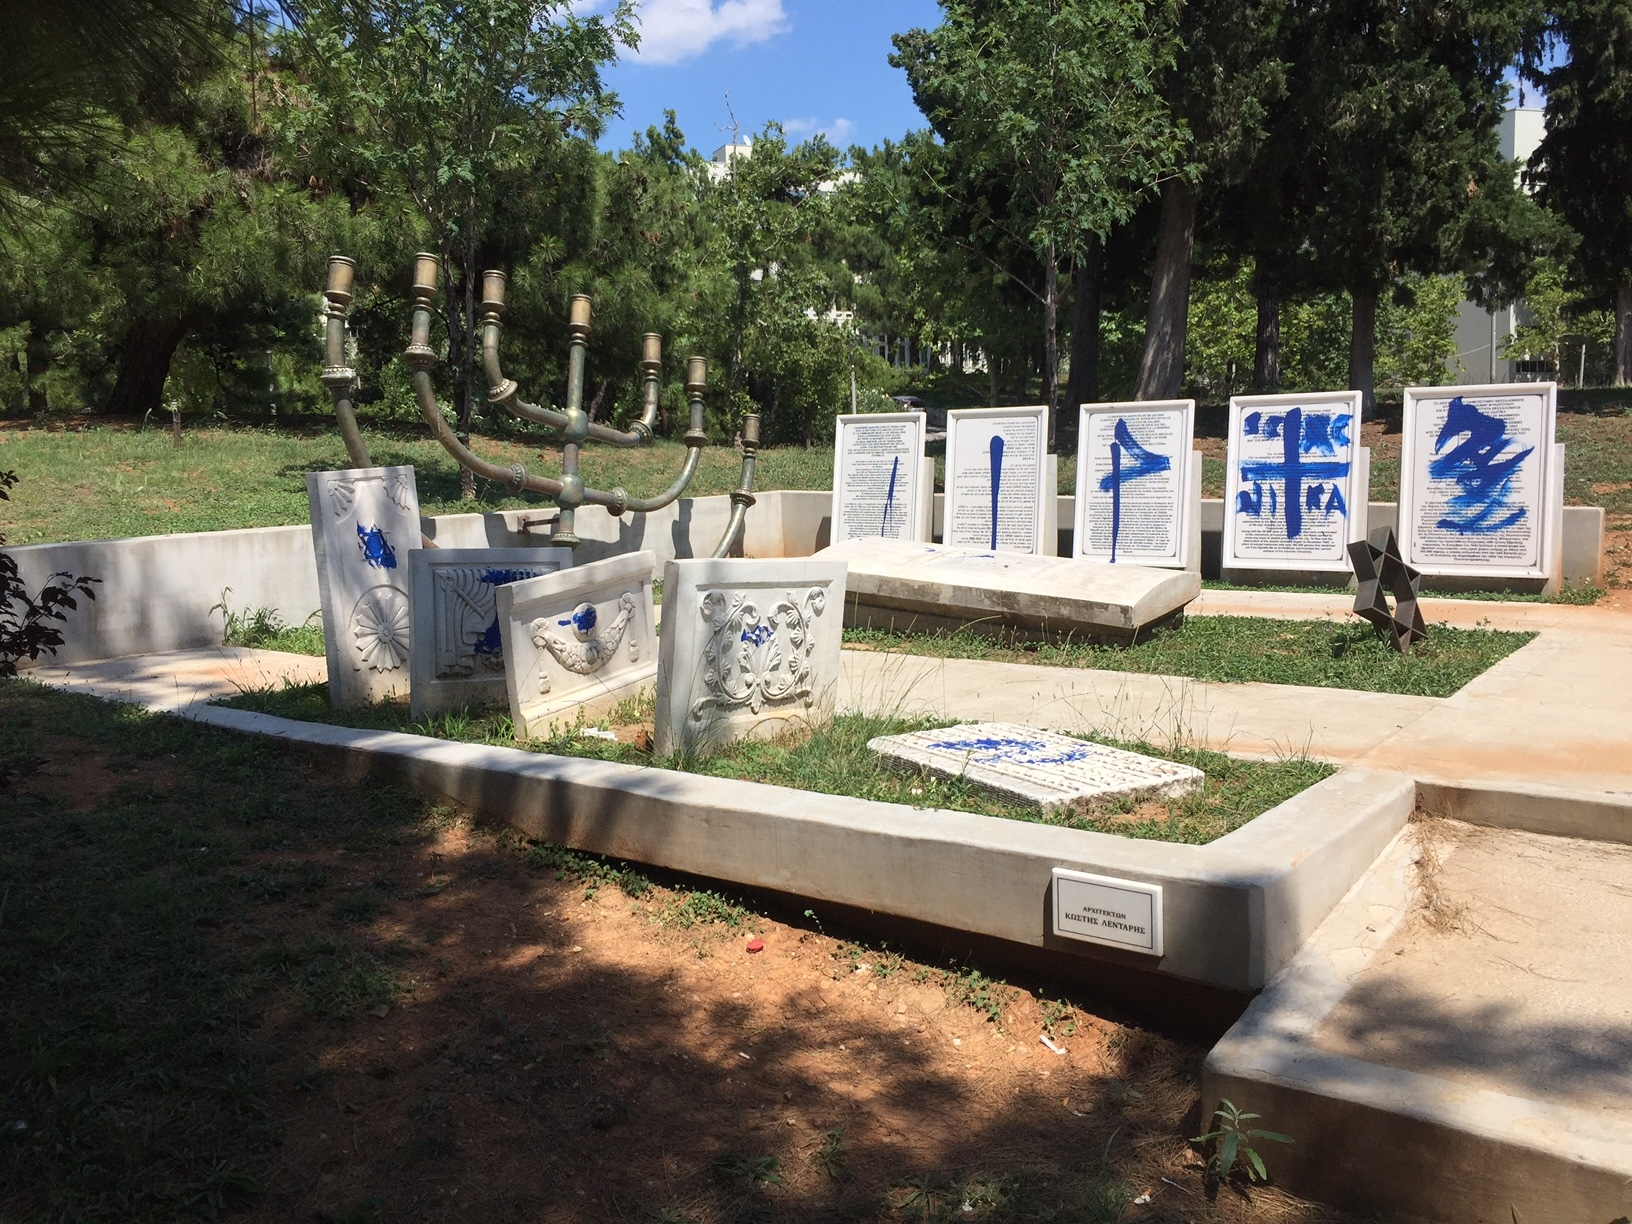 Desecration of the Monument of the Aristotle University - Athens Jewish Community - Ισραηλιτική Κοινότητα Αθηνών